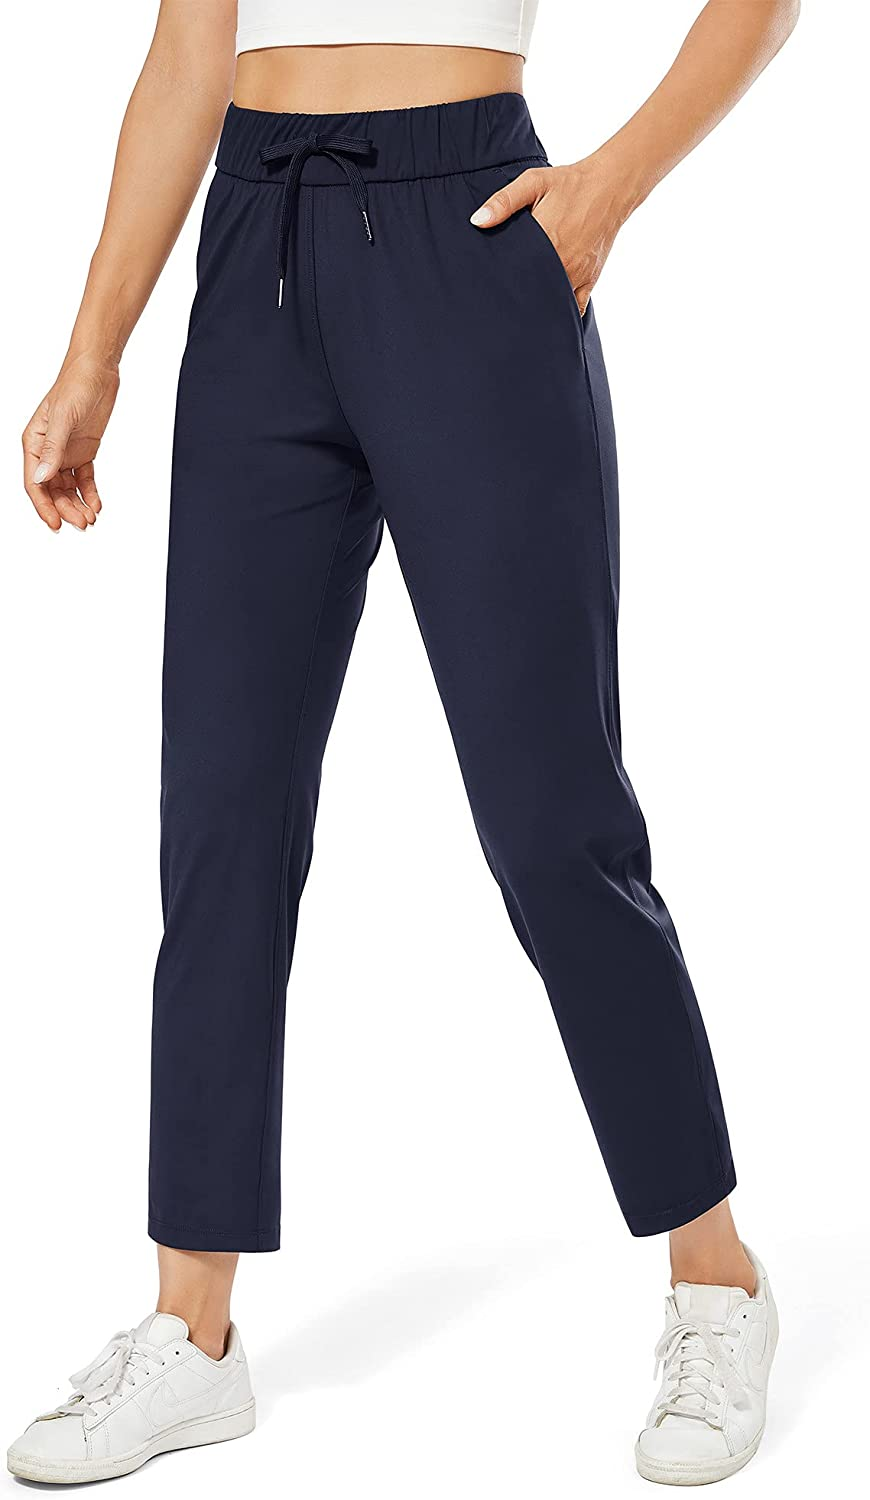 G4Free Womens Lounge Sweatpants Ankle Athletic Pants Nippon regular agency 70% OFF Outlet Pocket with